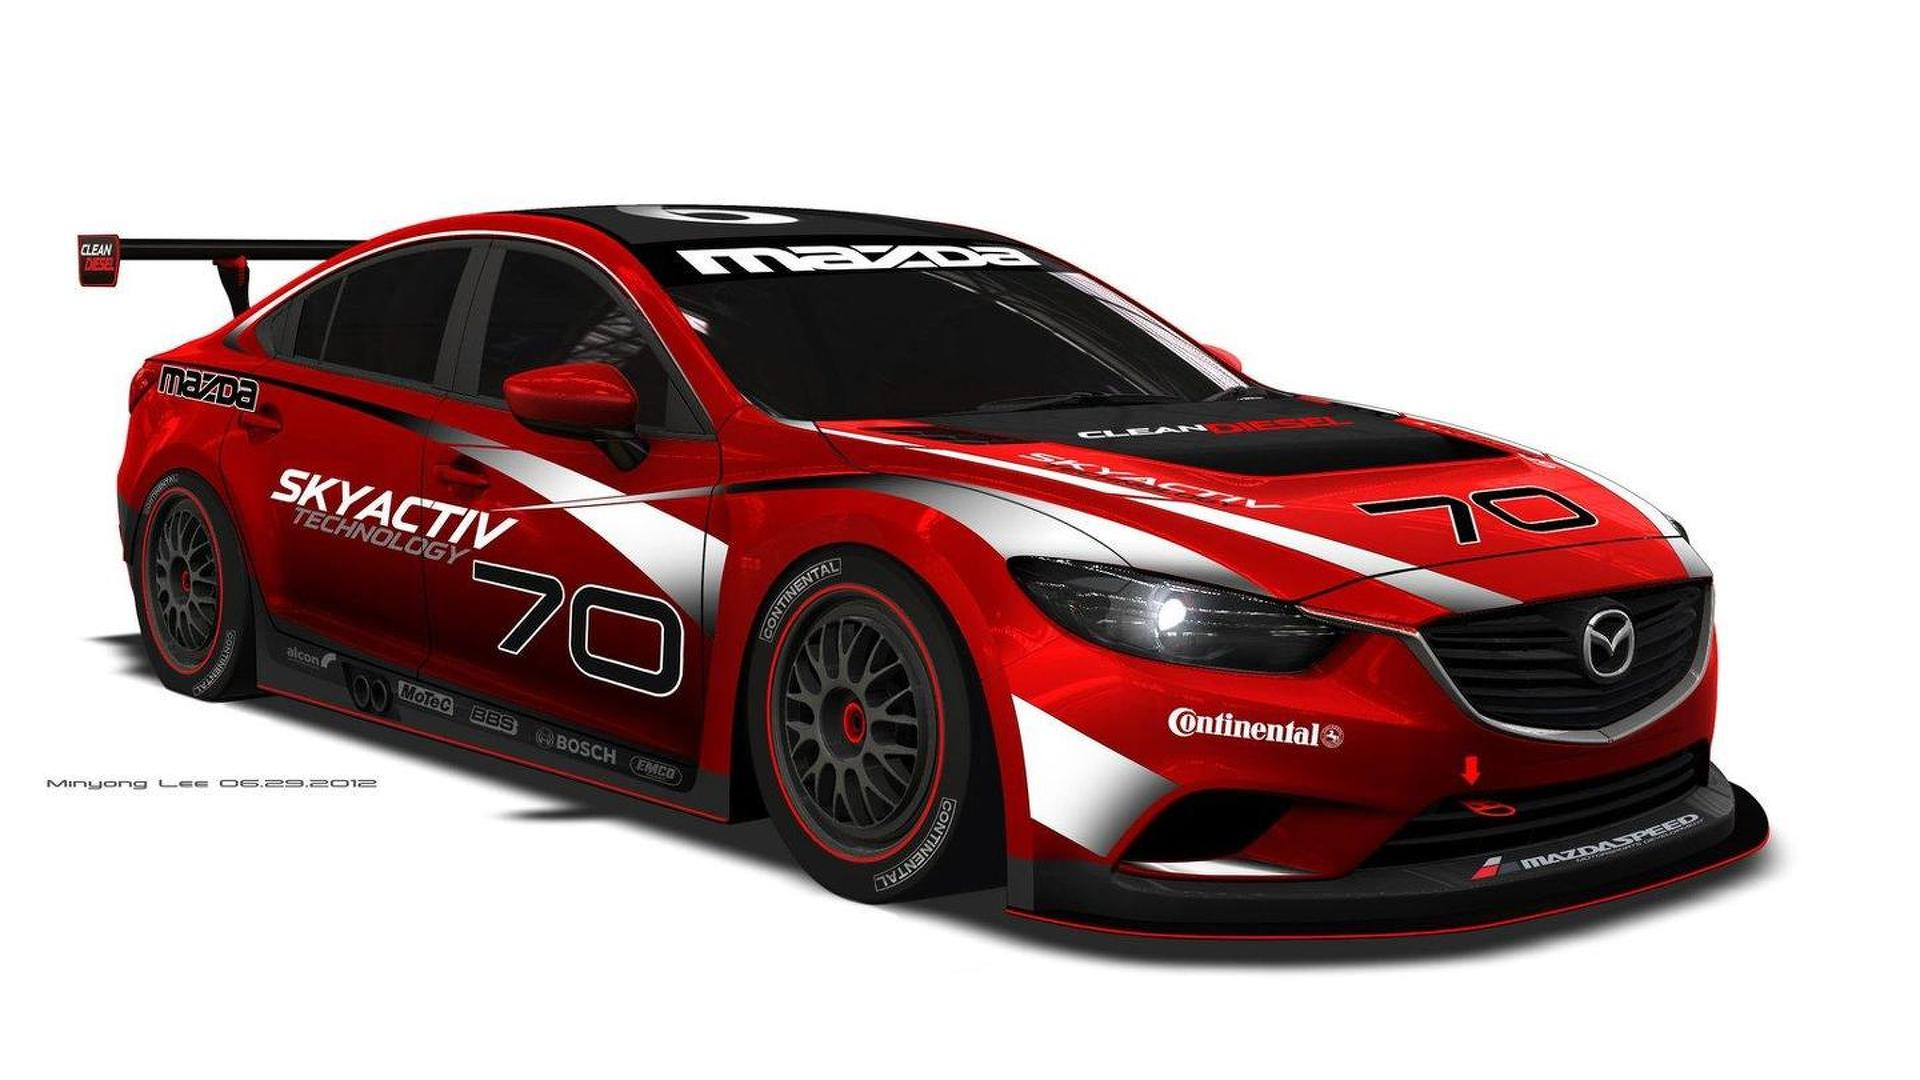 Mazda6 diesel confirmed for U.S. and new GRAND-AM GX endurance racer